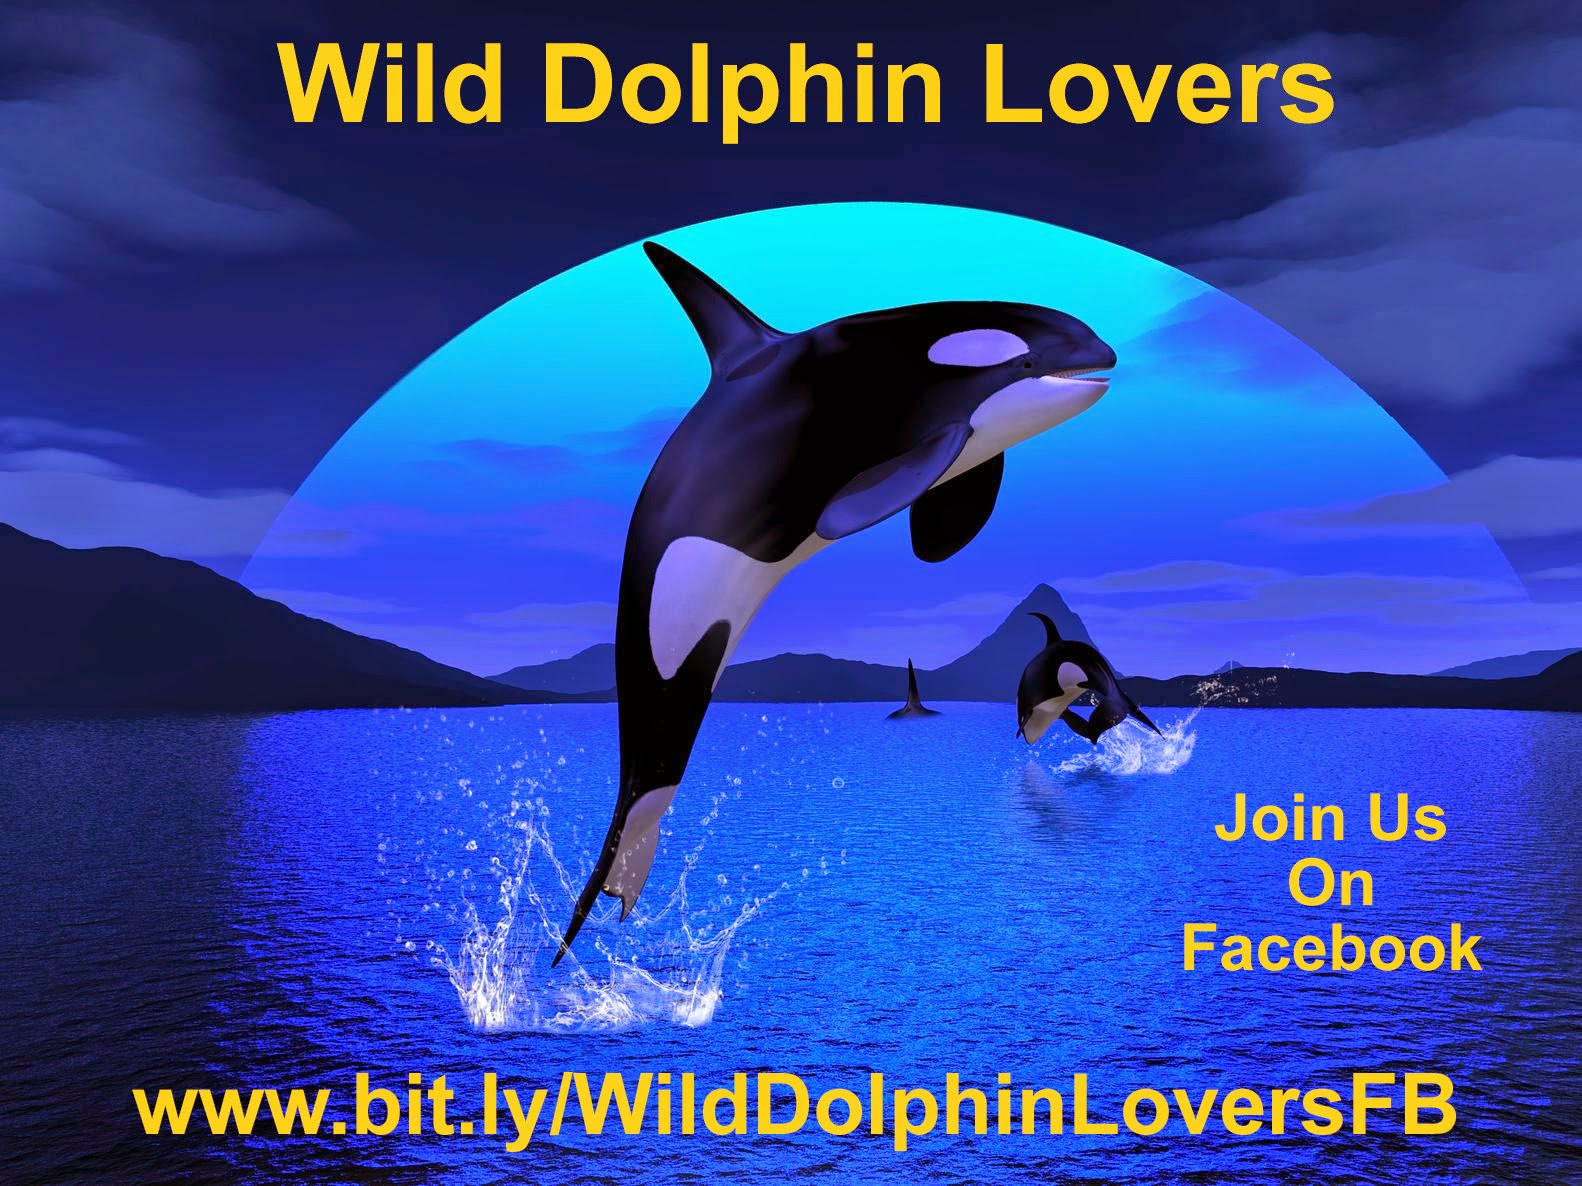 Wild Dolphin Lovers FB Group